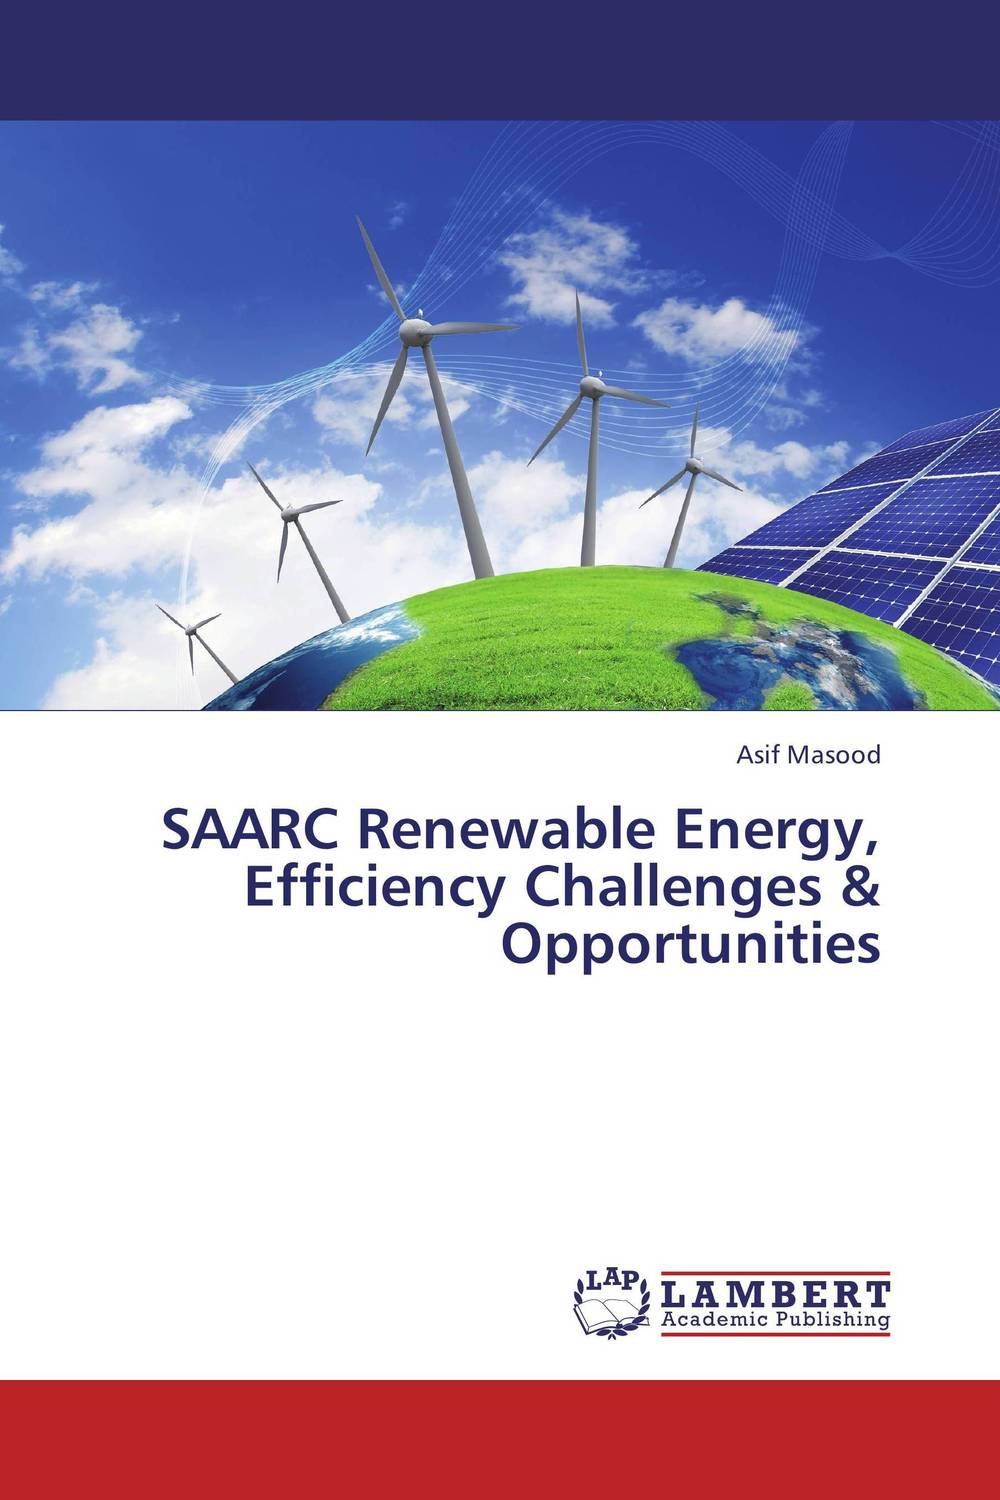 SAARC Renewable Energy, Efficiency Challenges & Opportunities waste heat recovery and energy conservation of arl distillation unit